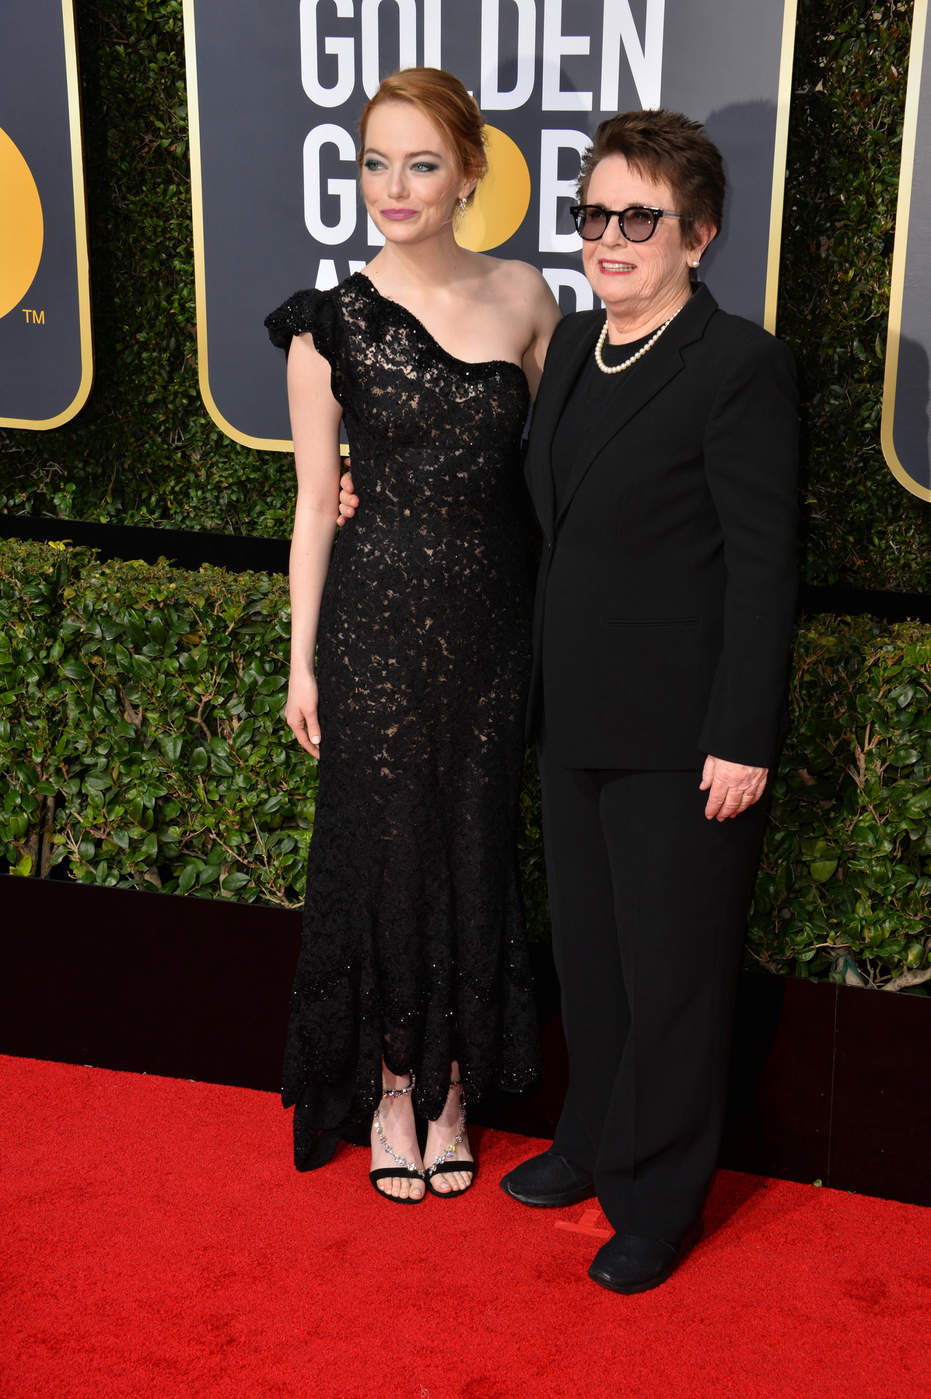 Emma Stone in a black Louis Vuitton one shoulder gown at the 2018 Golden Globe Awards red carpet